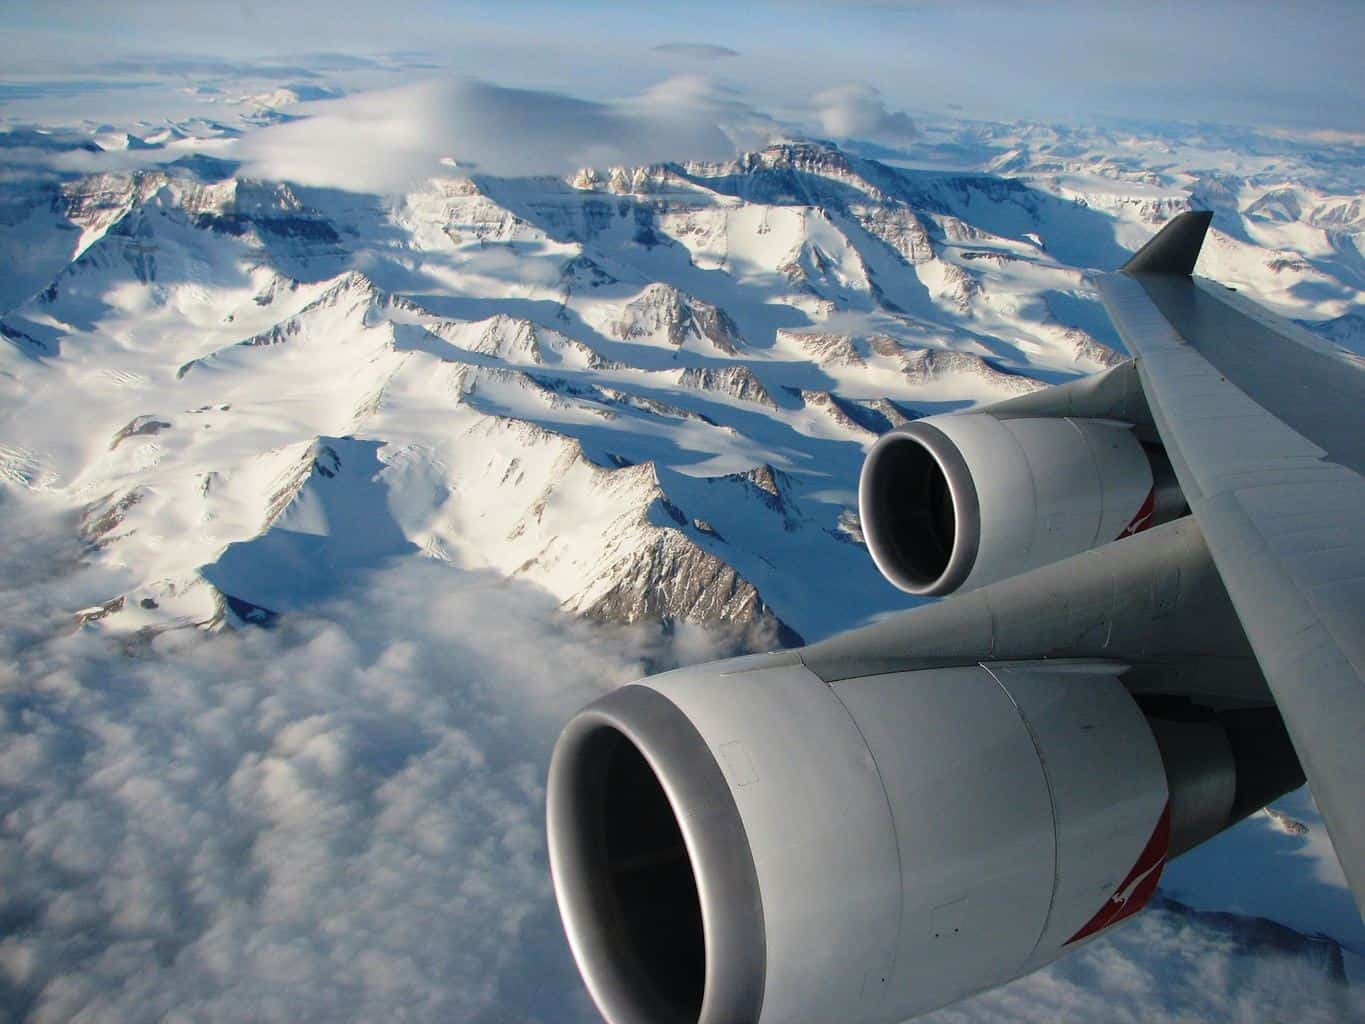 Antarctic Flights from $1199: